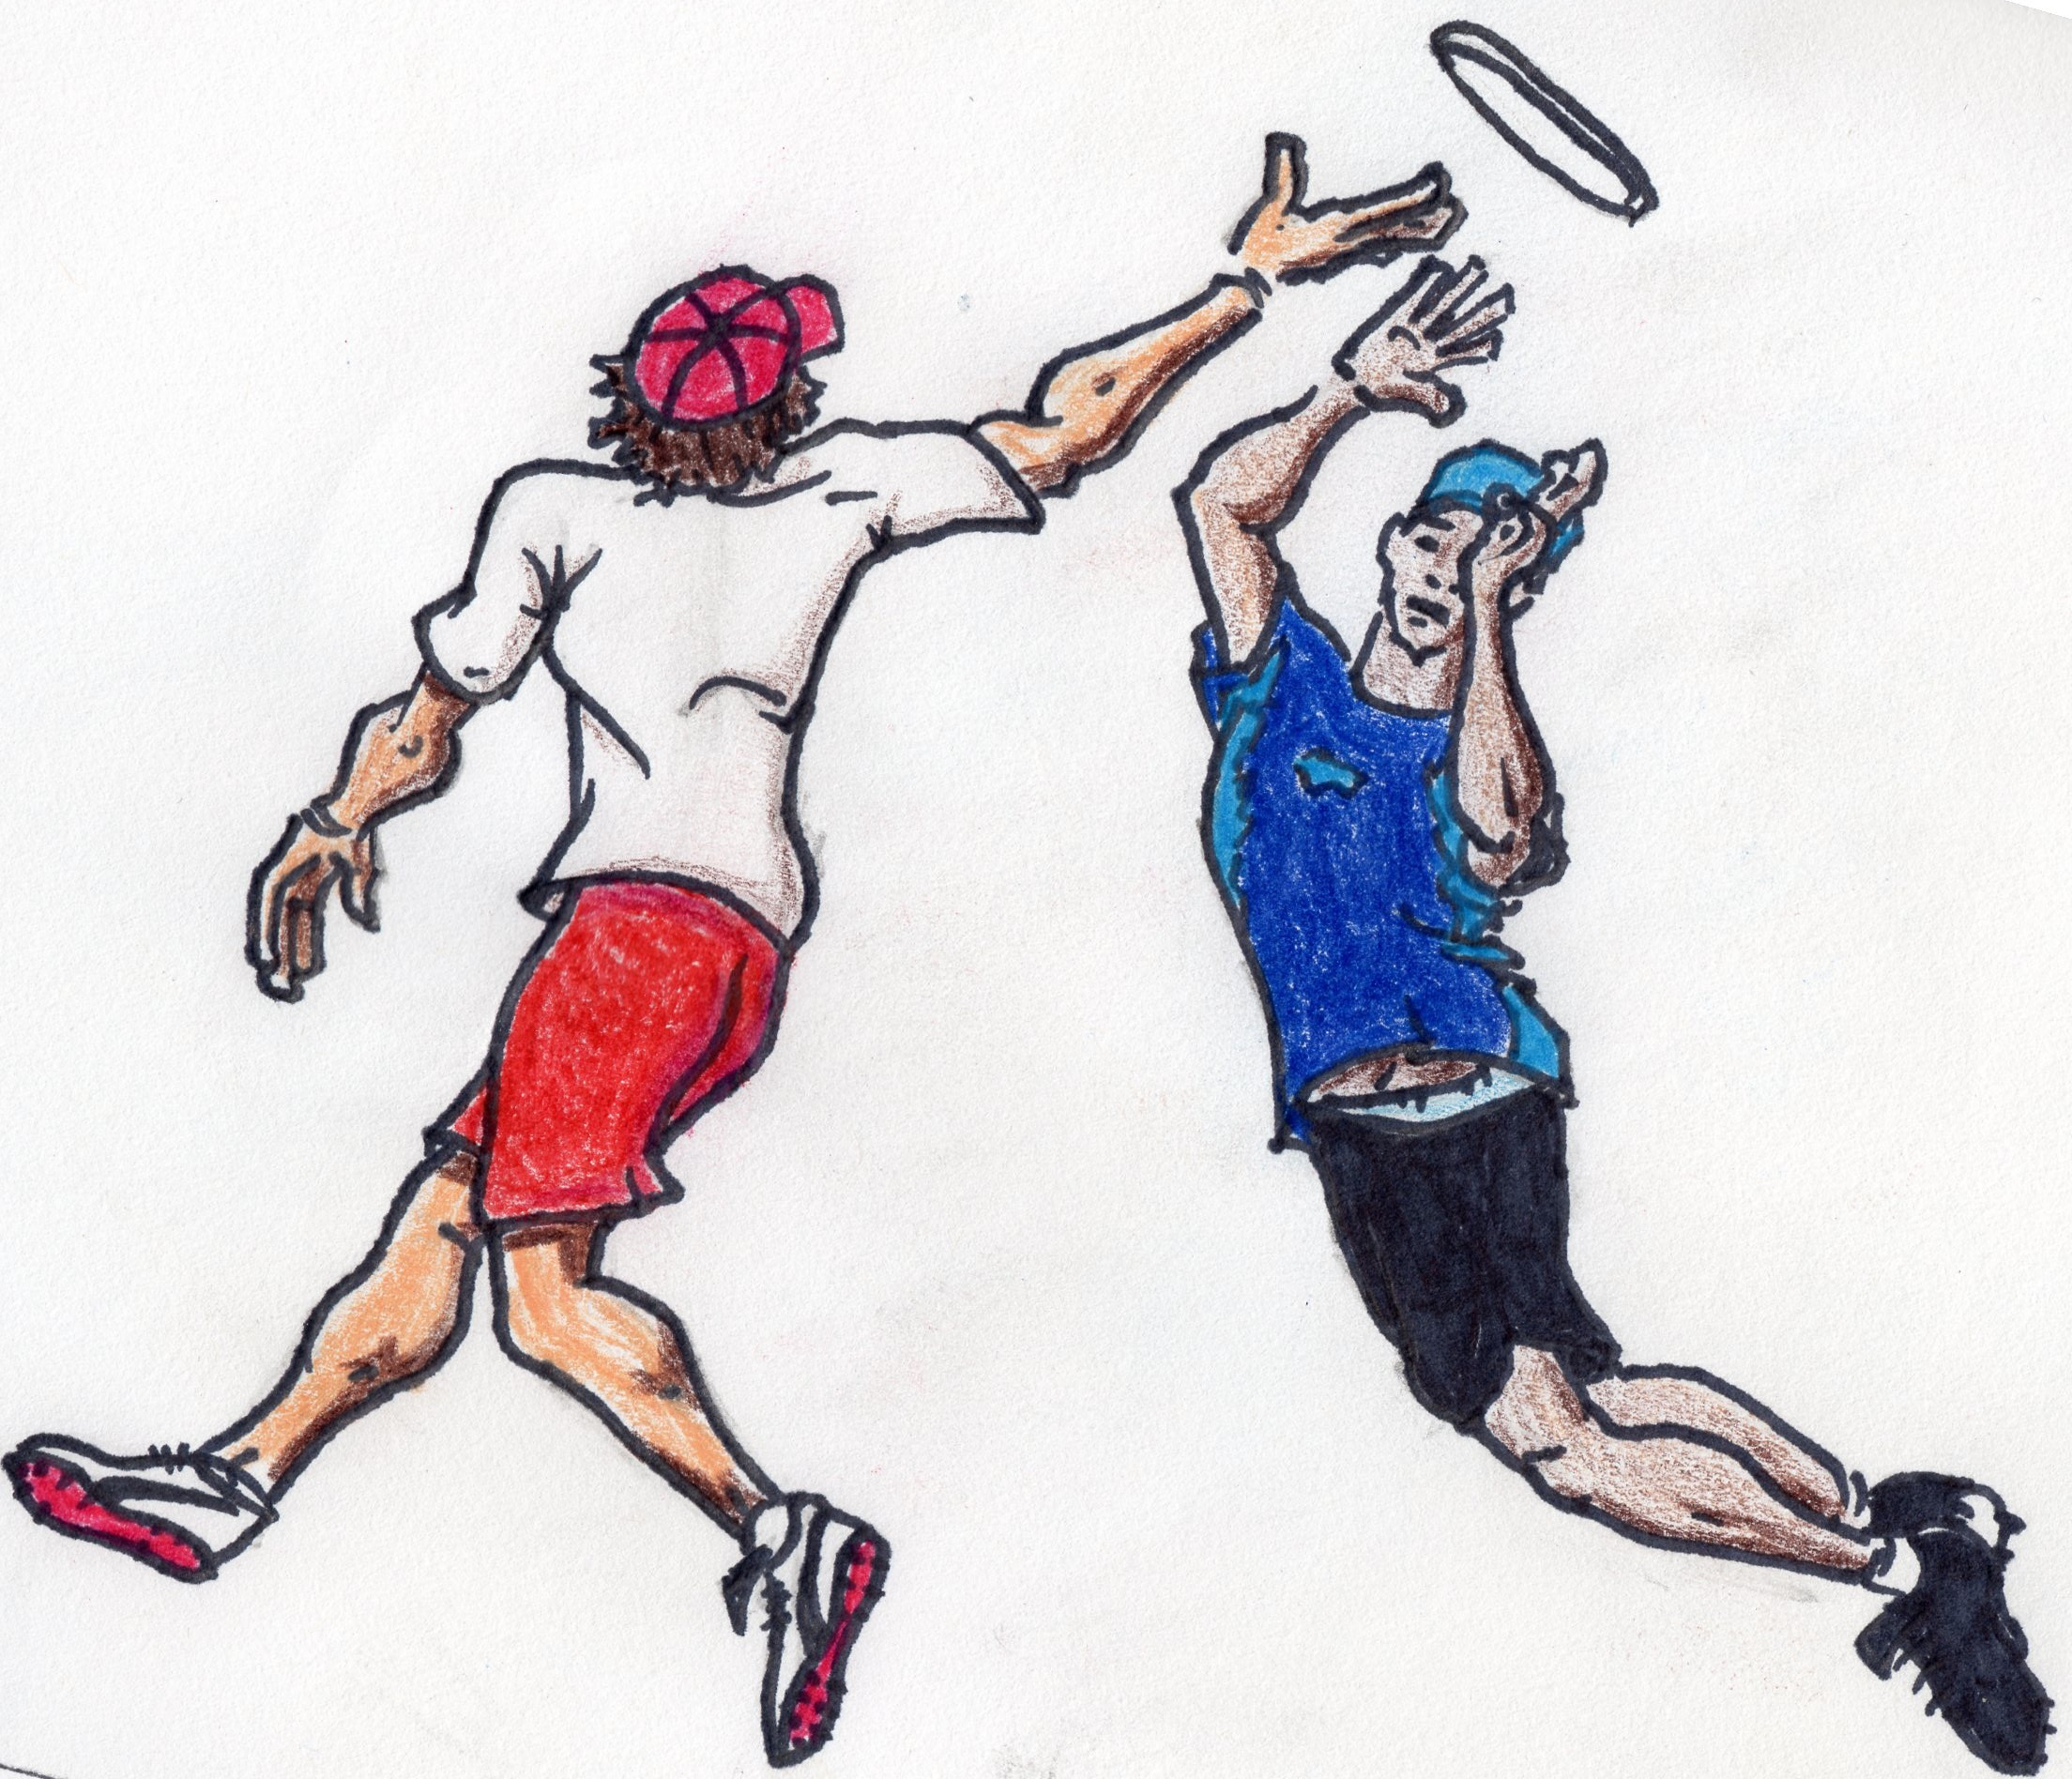 Frisbee clipart ultimate frisbee. Drawing at getdrawings com